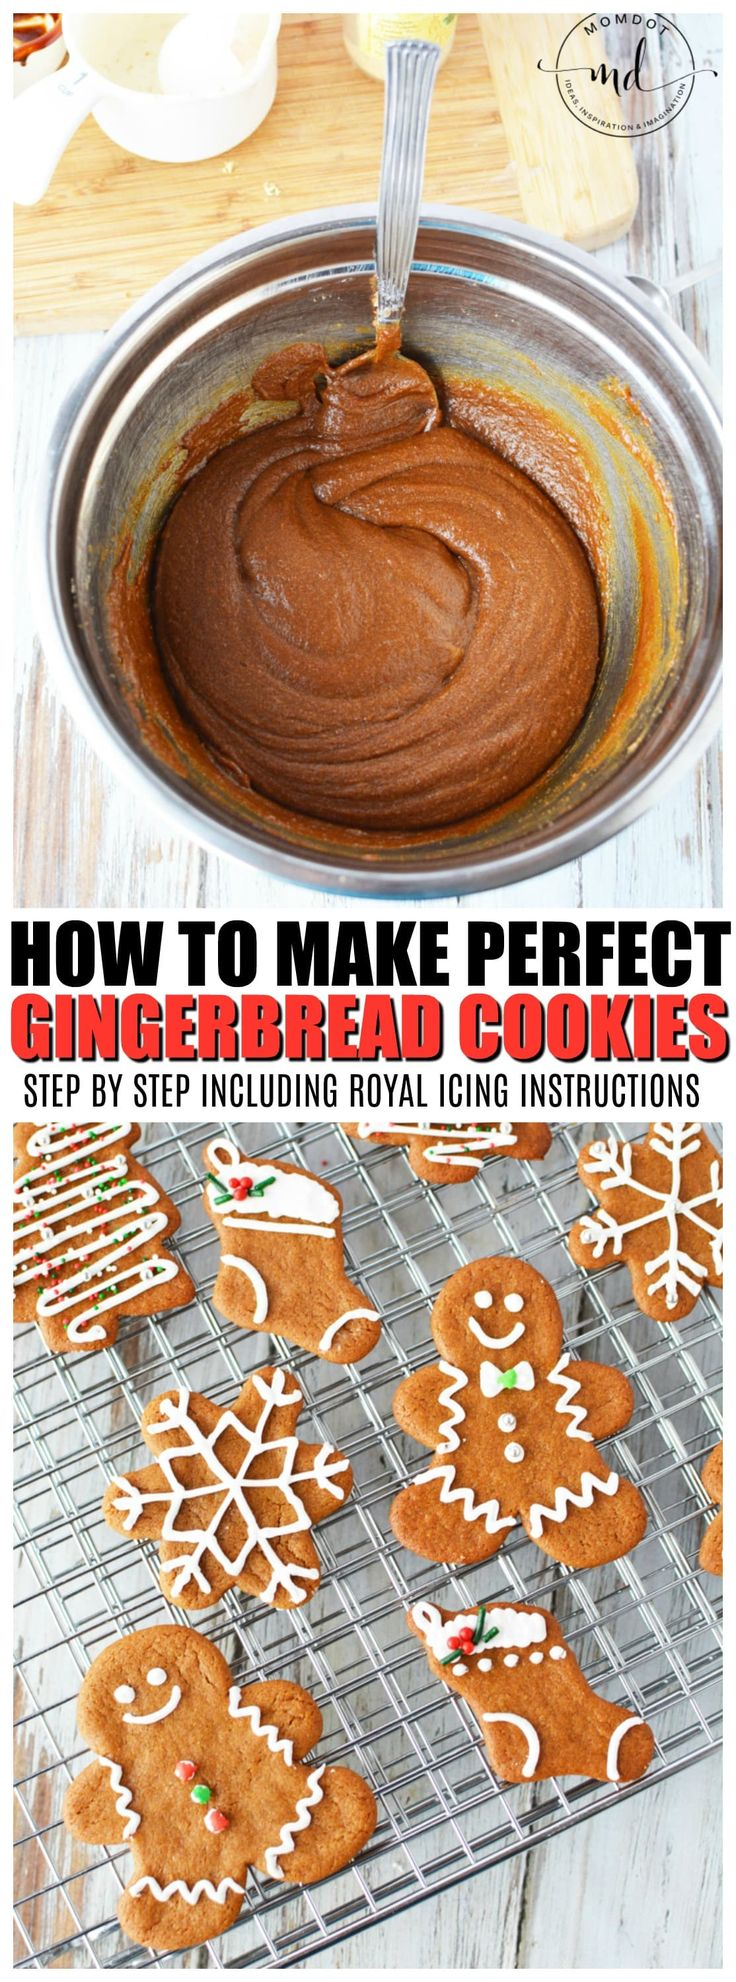 Easy Gingerbread Cookie Recipe | How to make Gingerbread Men Cookies #christmas #baking #cookies #holidays #christmascookies